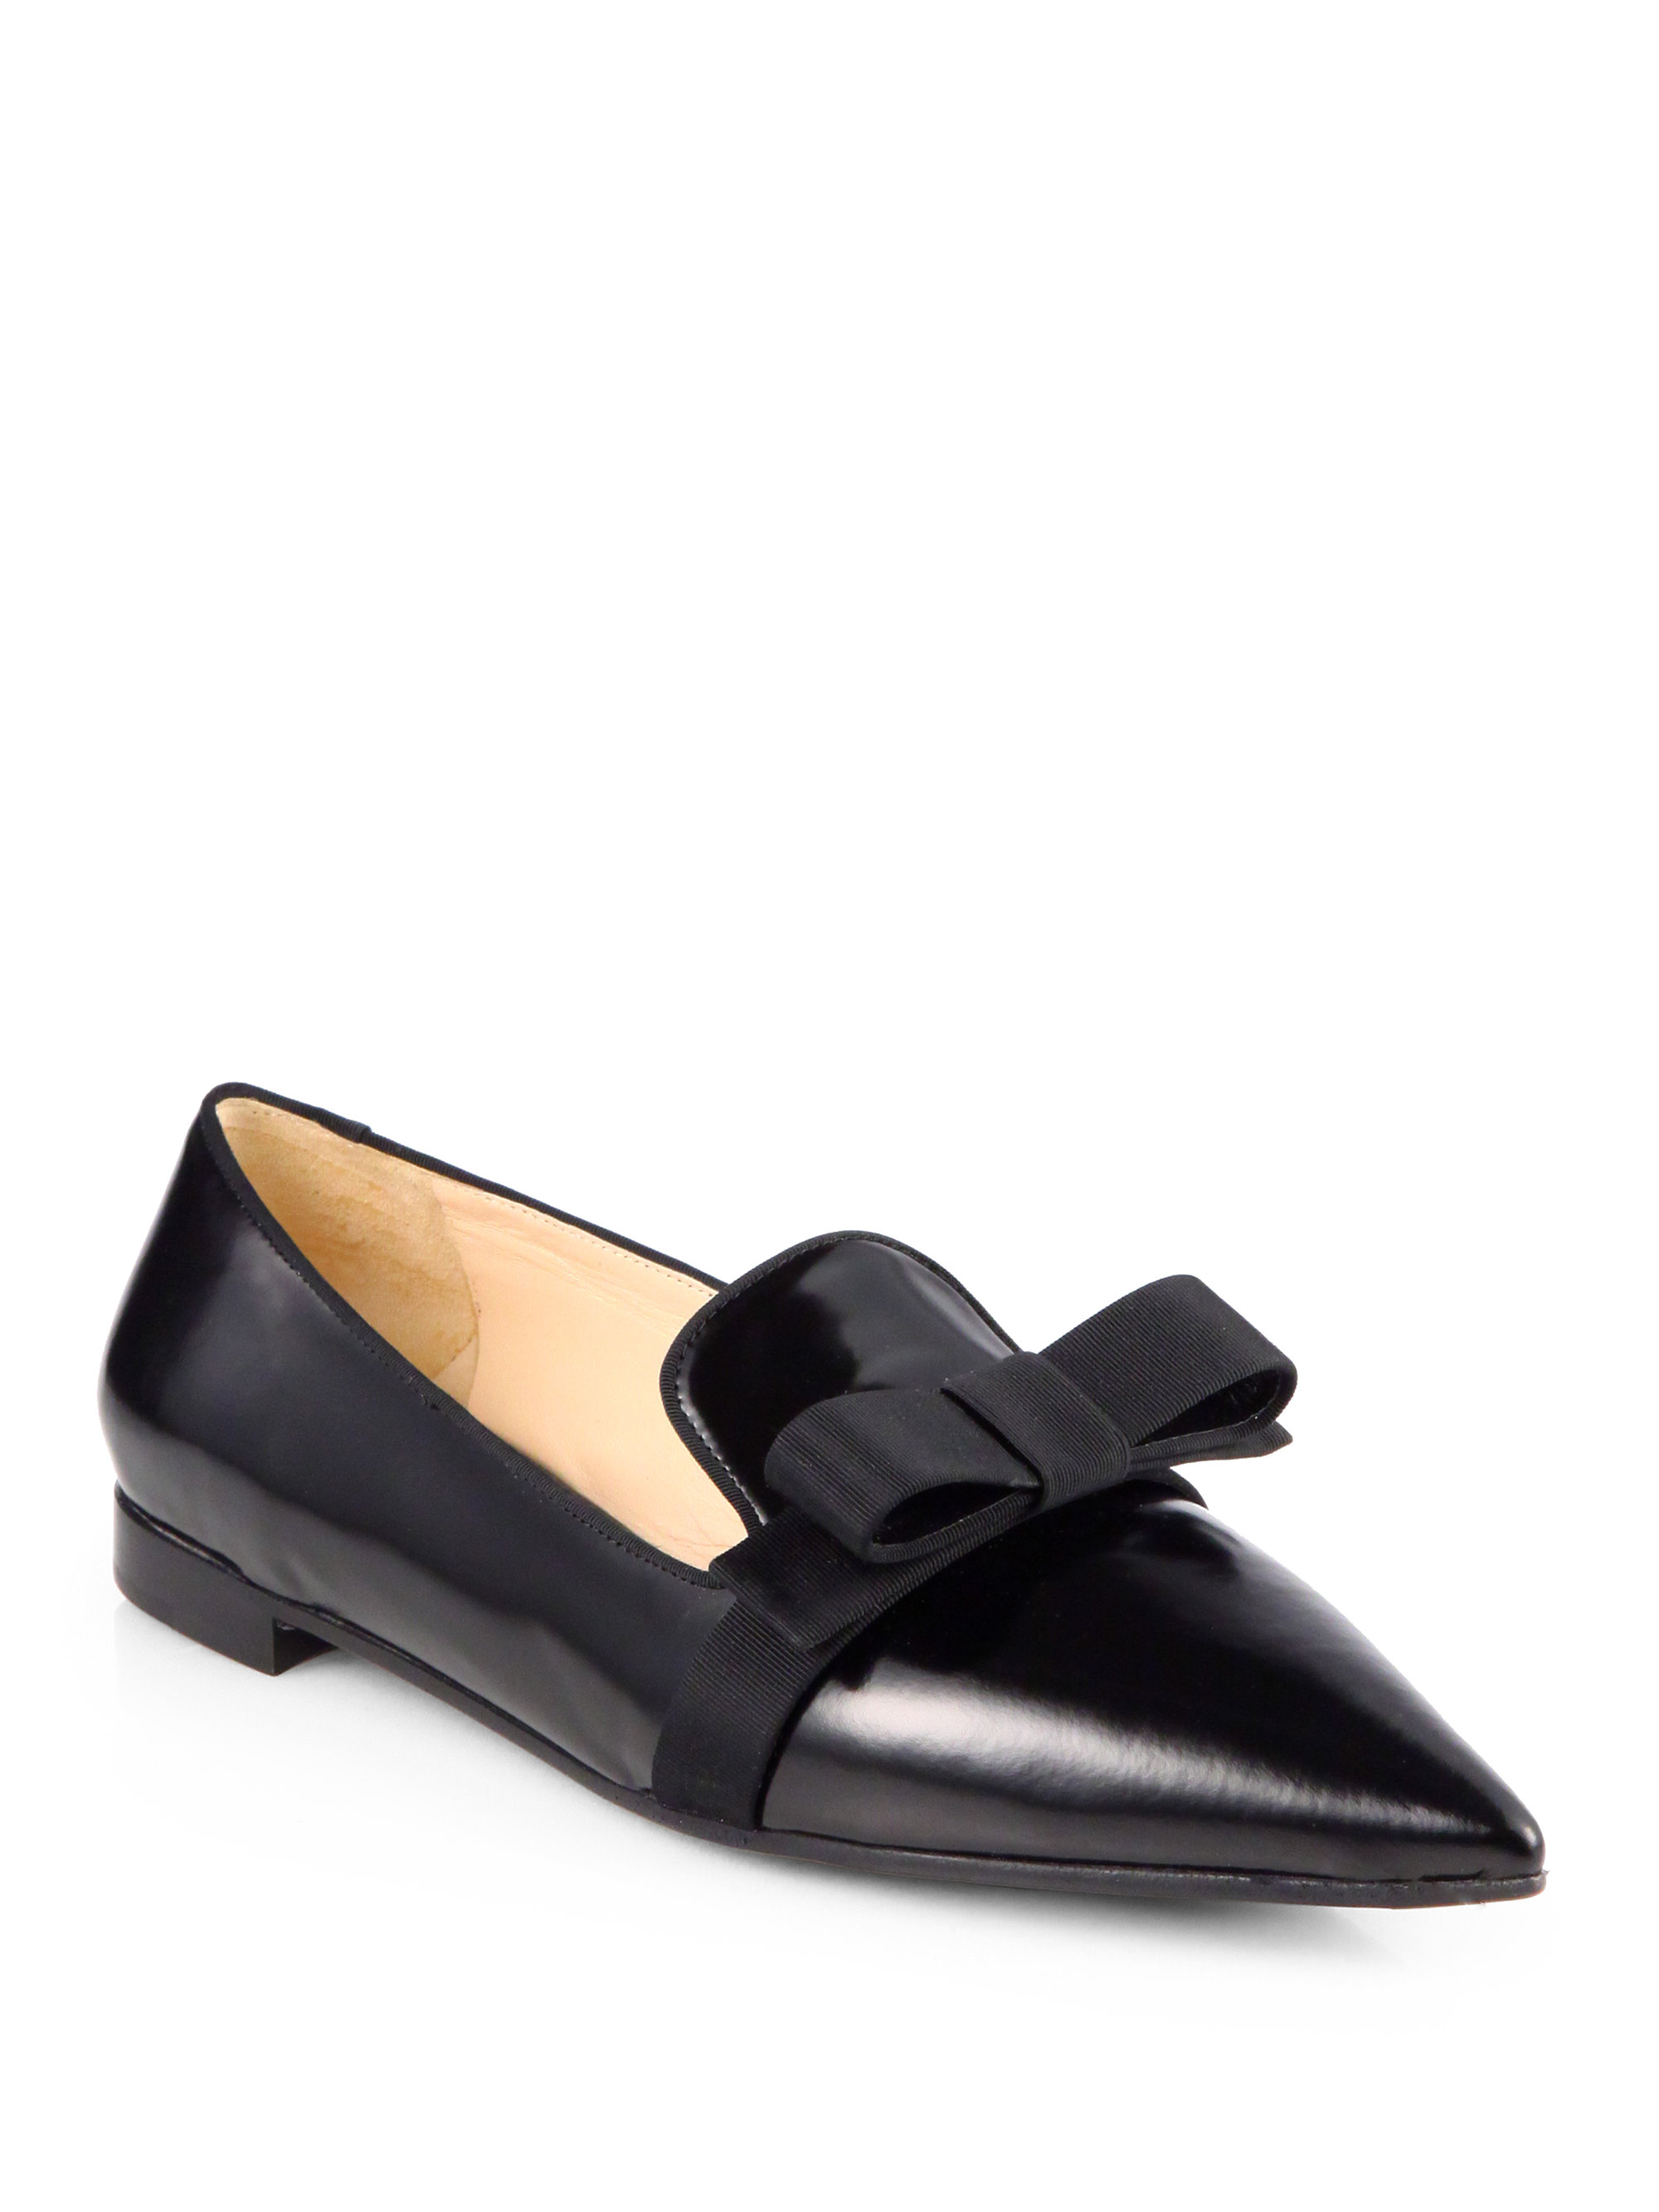 420d1909b Gallery. Previously sold at: Saks Fifth Avenue · Women's Prada Ballet Flats